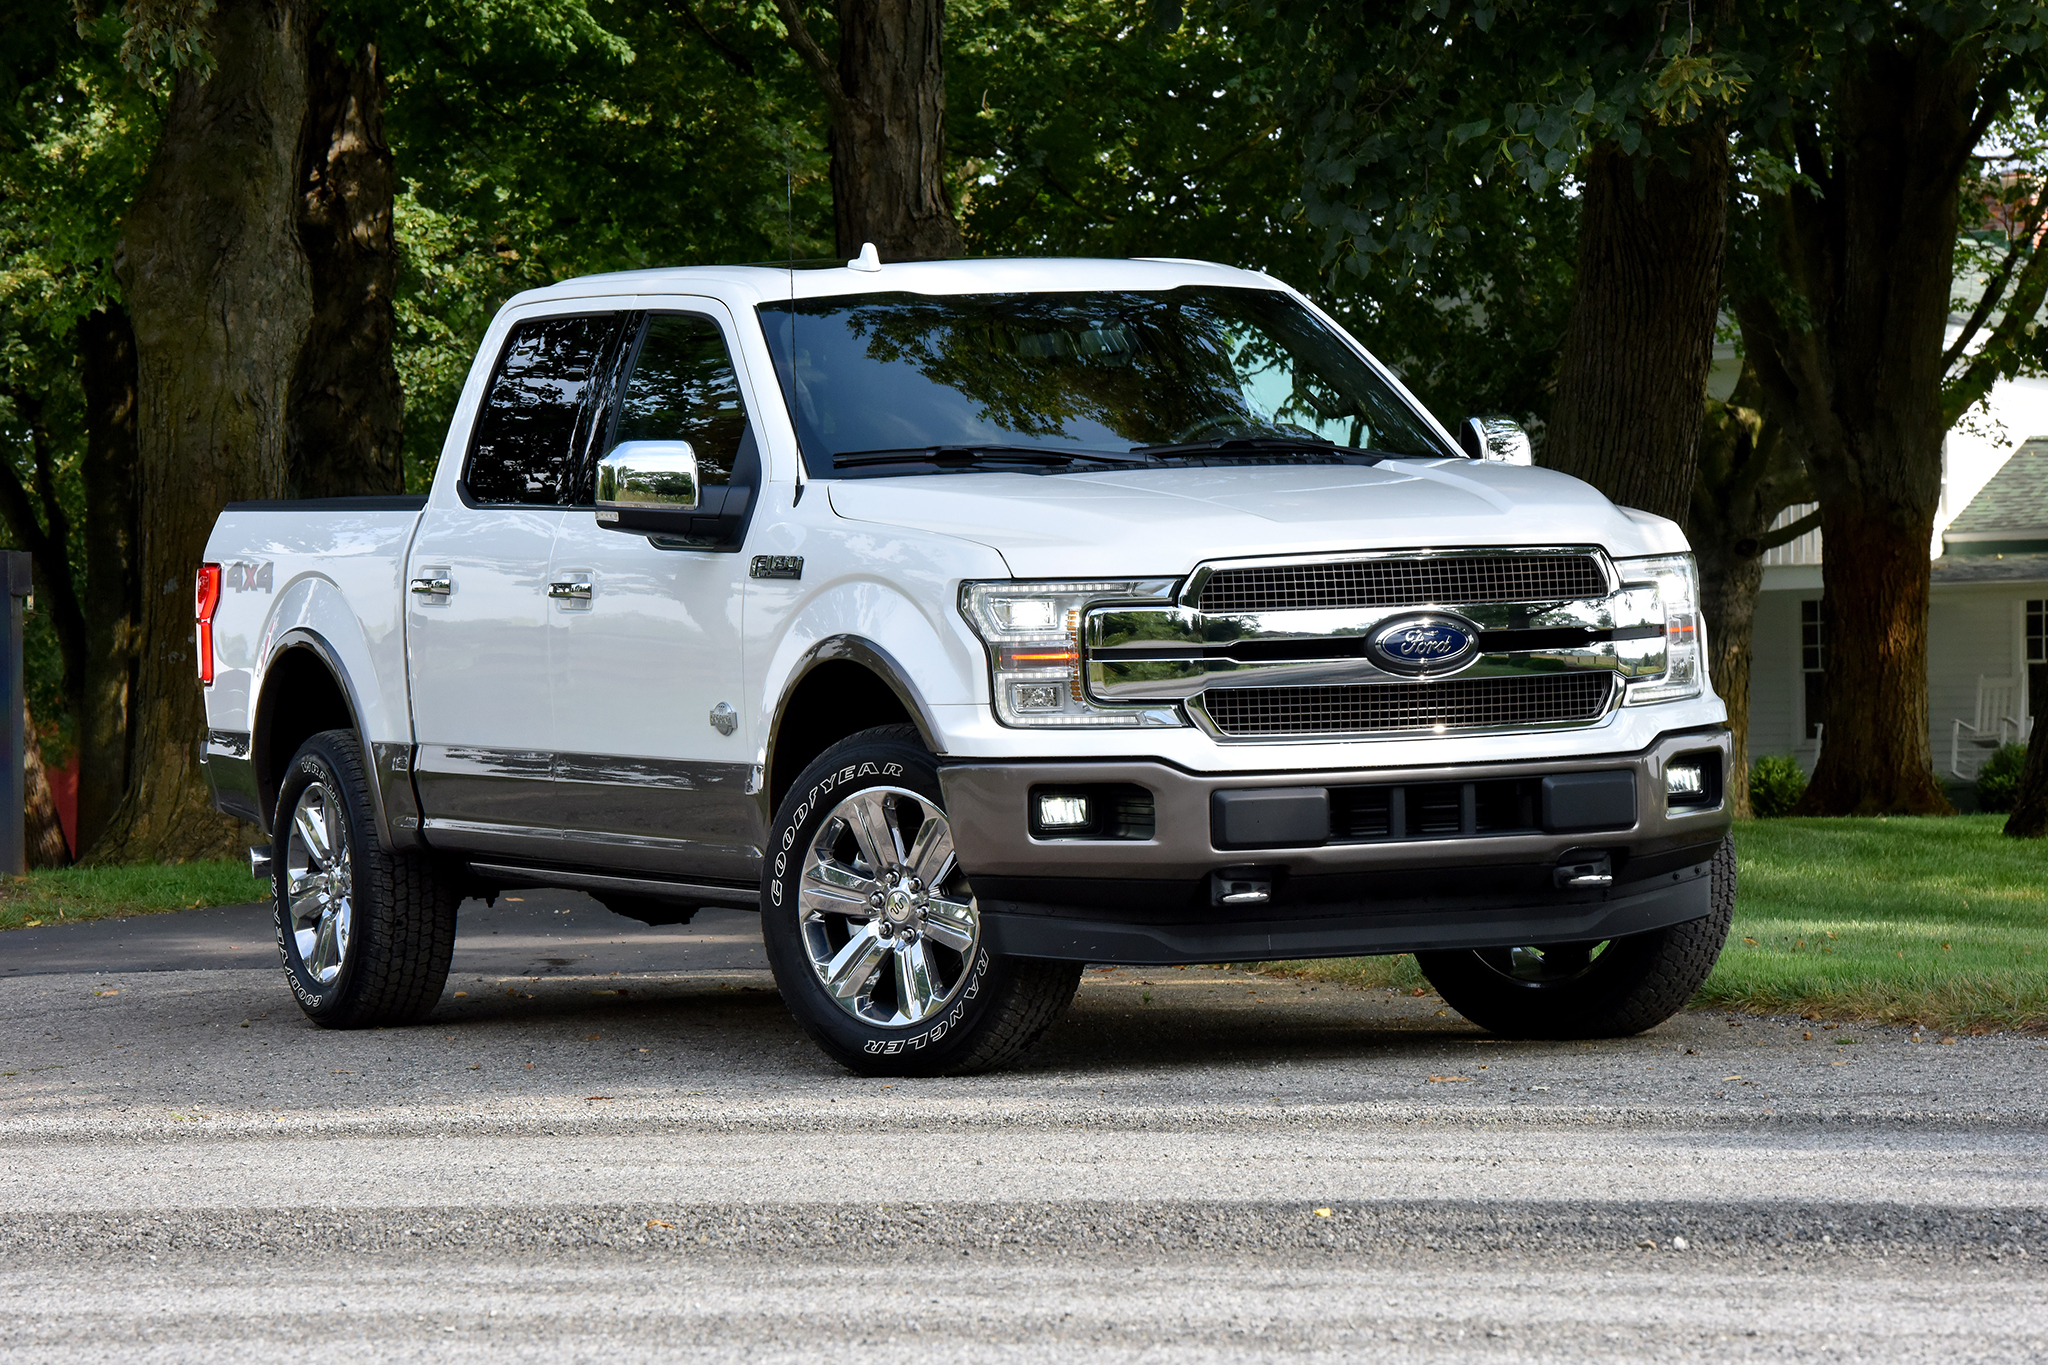 f 150 expert ford f 150 pickup truck news. Black Bedroom Furniture Sets. Home Design Ideas